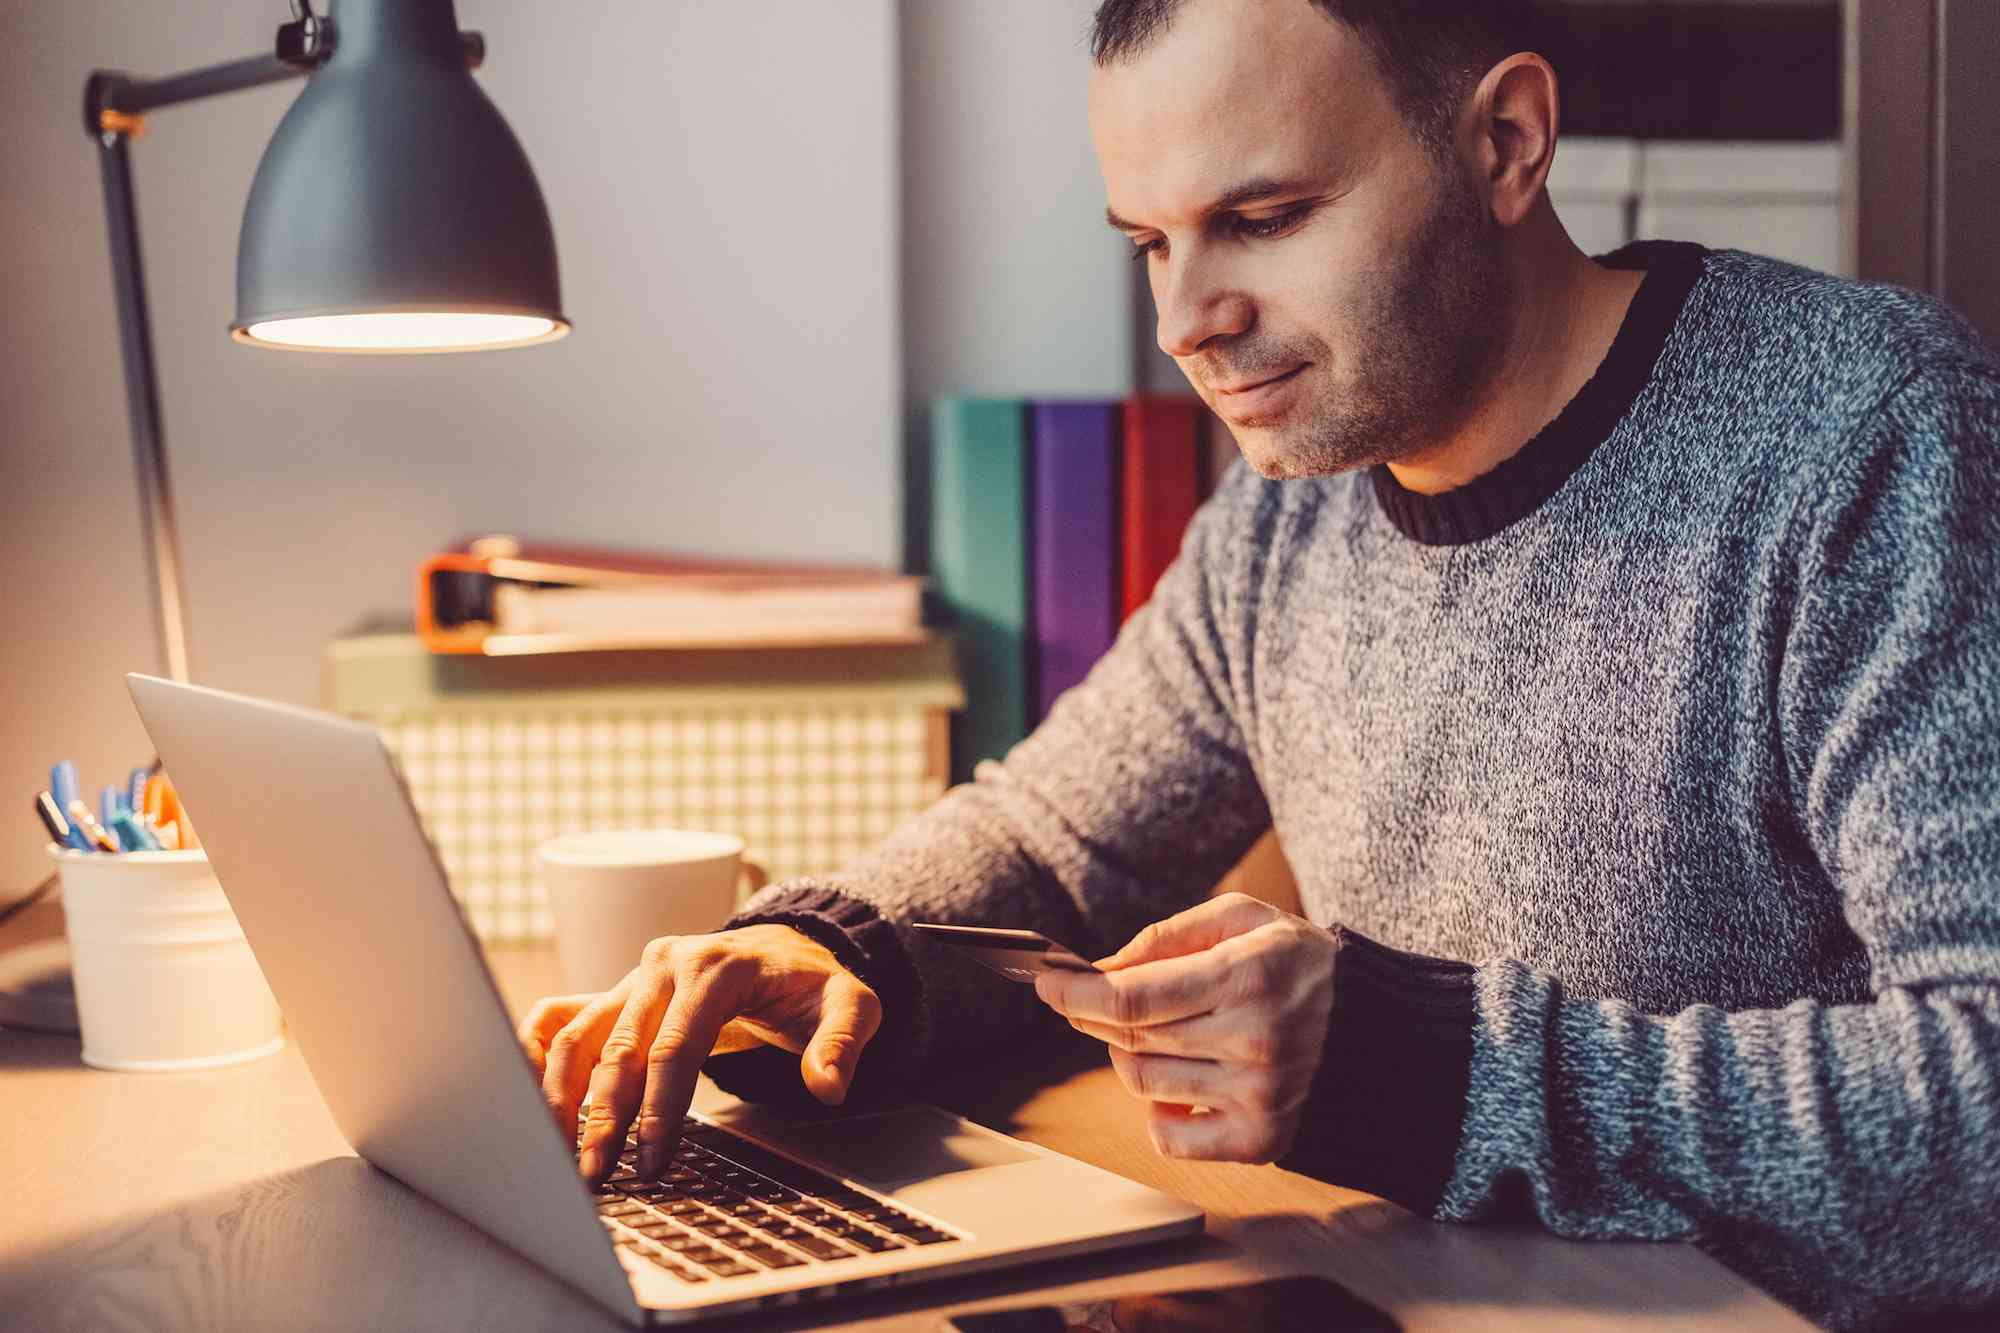 Man at home shopping online with credit card